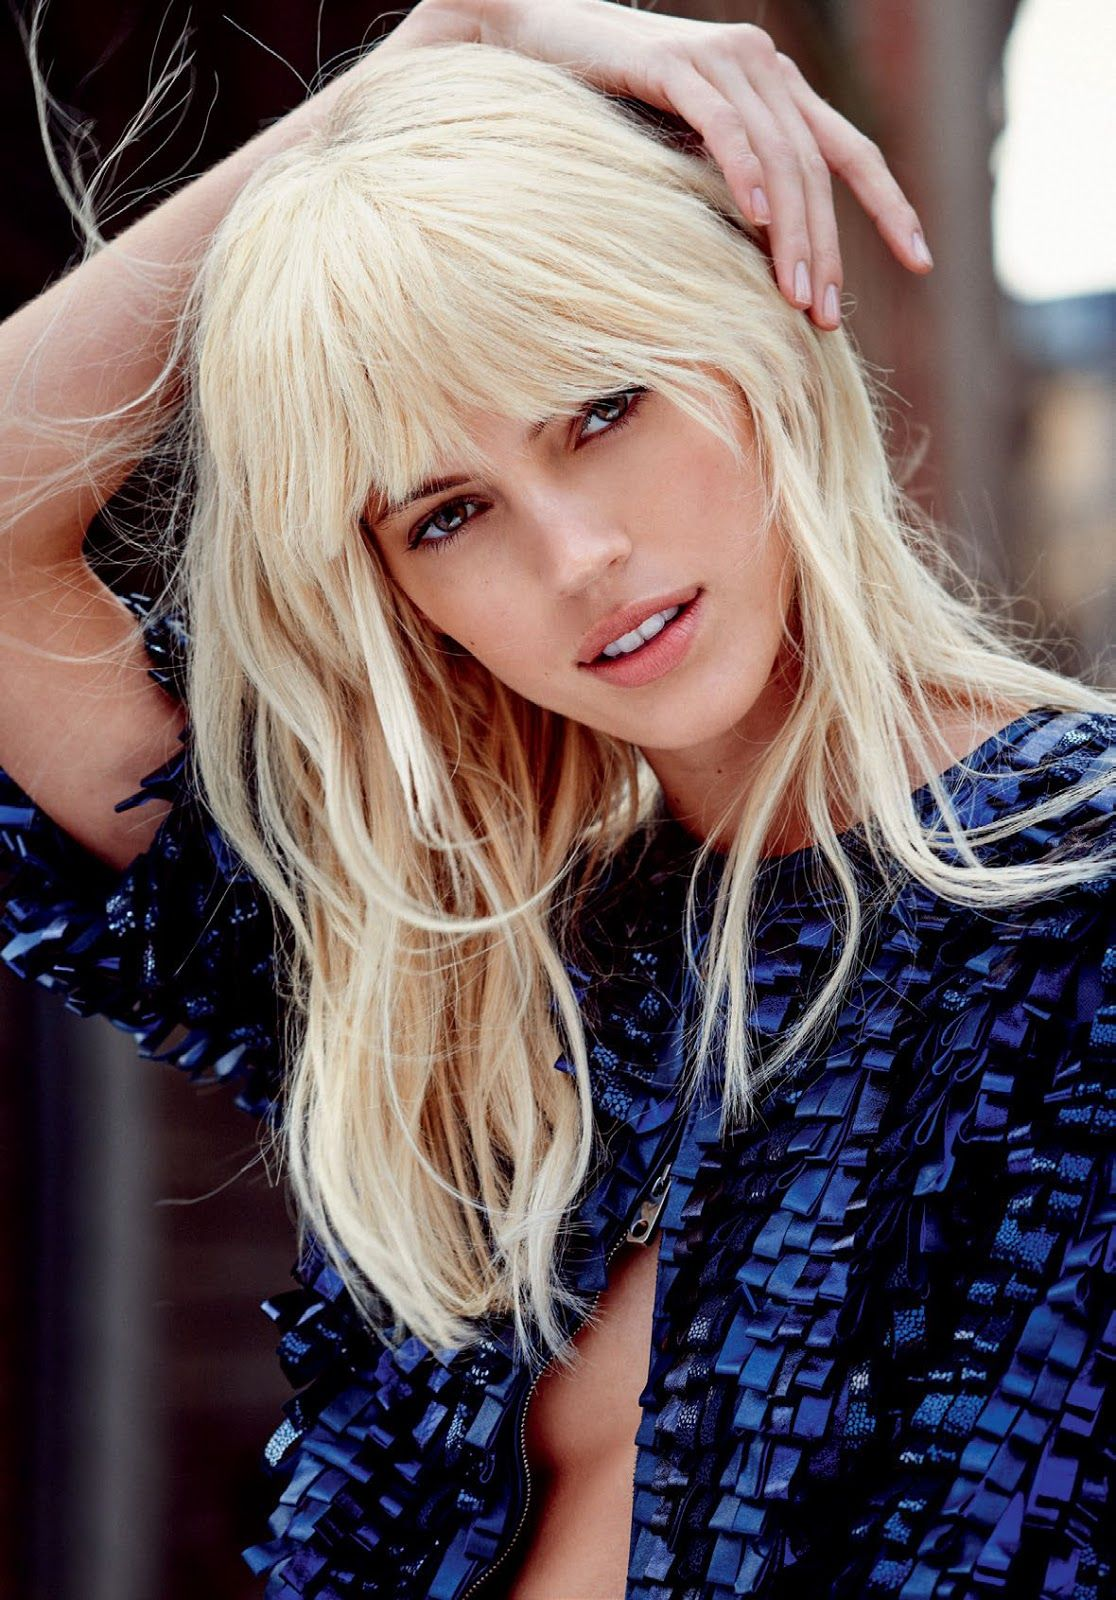 THE GLAMOUR BLUES April 21 2015 Covergirl Glam Pinterest